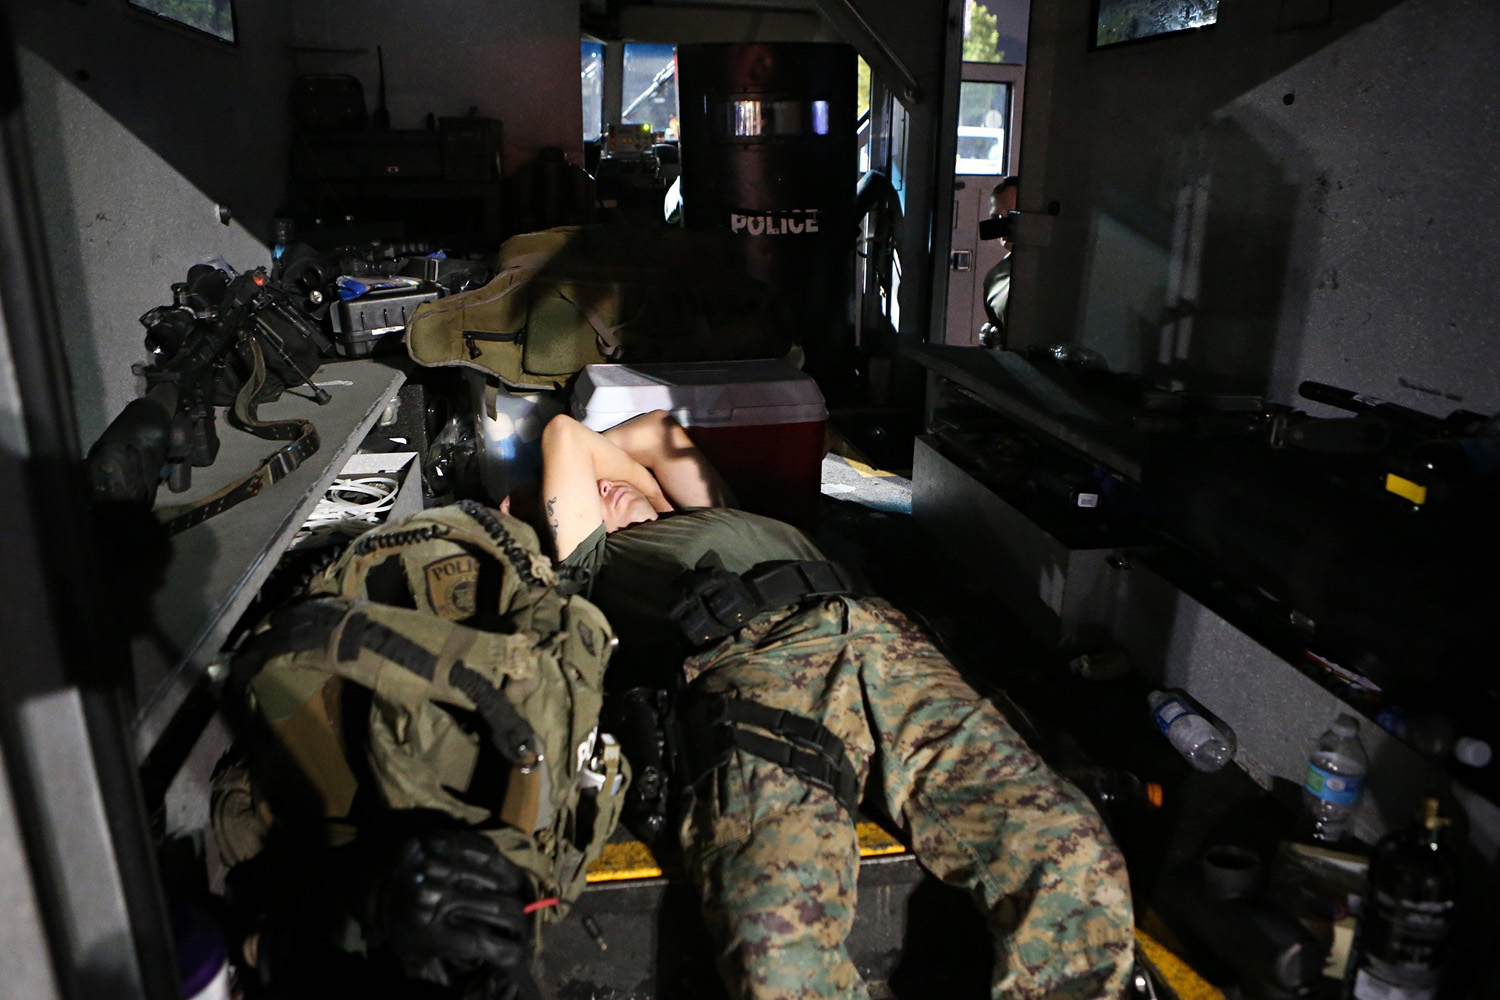 Aug. 19, 2014. A member of the St. Louis County Police tactical team sleeps in the back of the team's armored truck after arriving back at the command post W. Florissant Avenue at about 2.49 a.m.